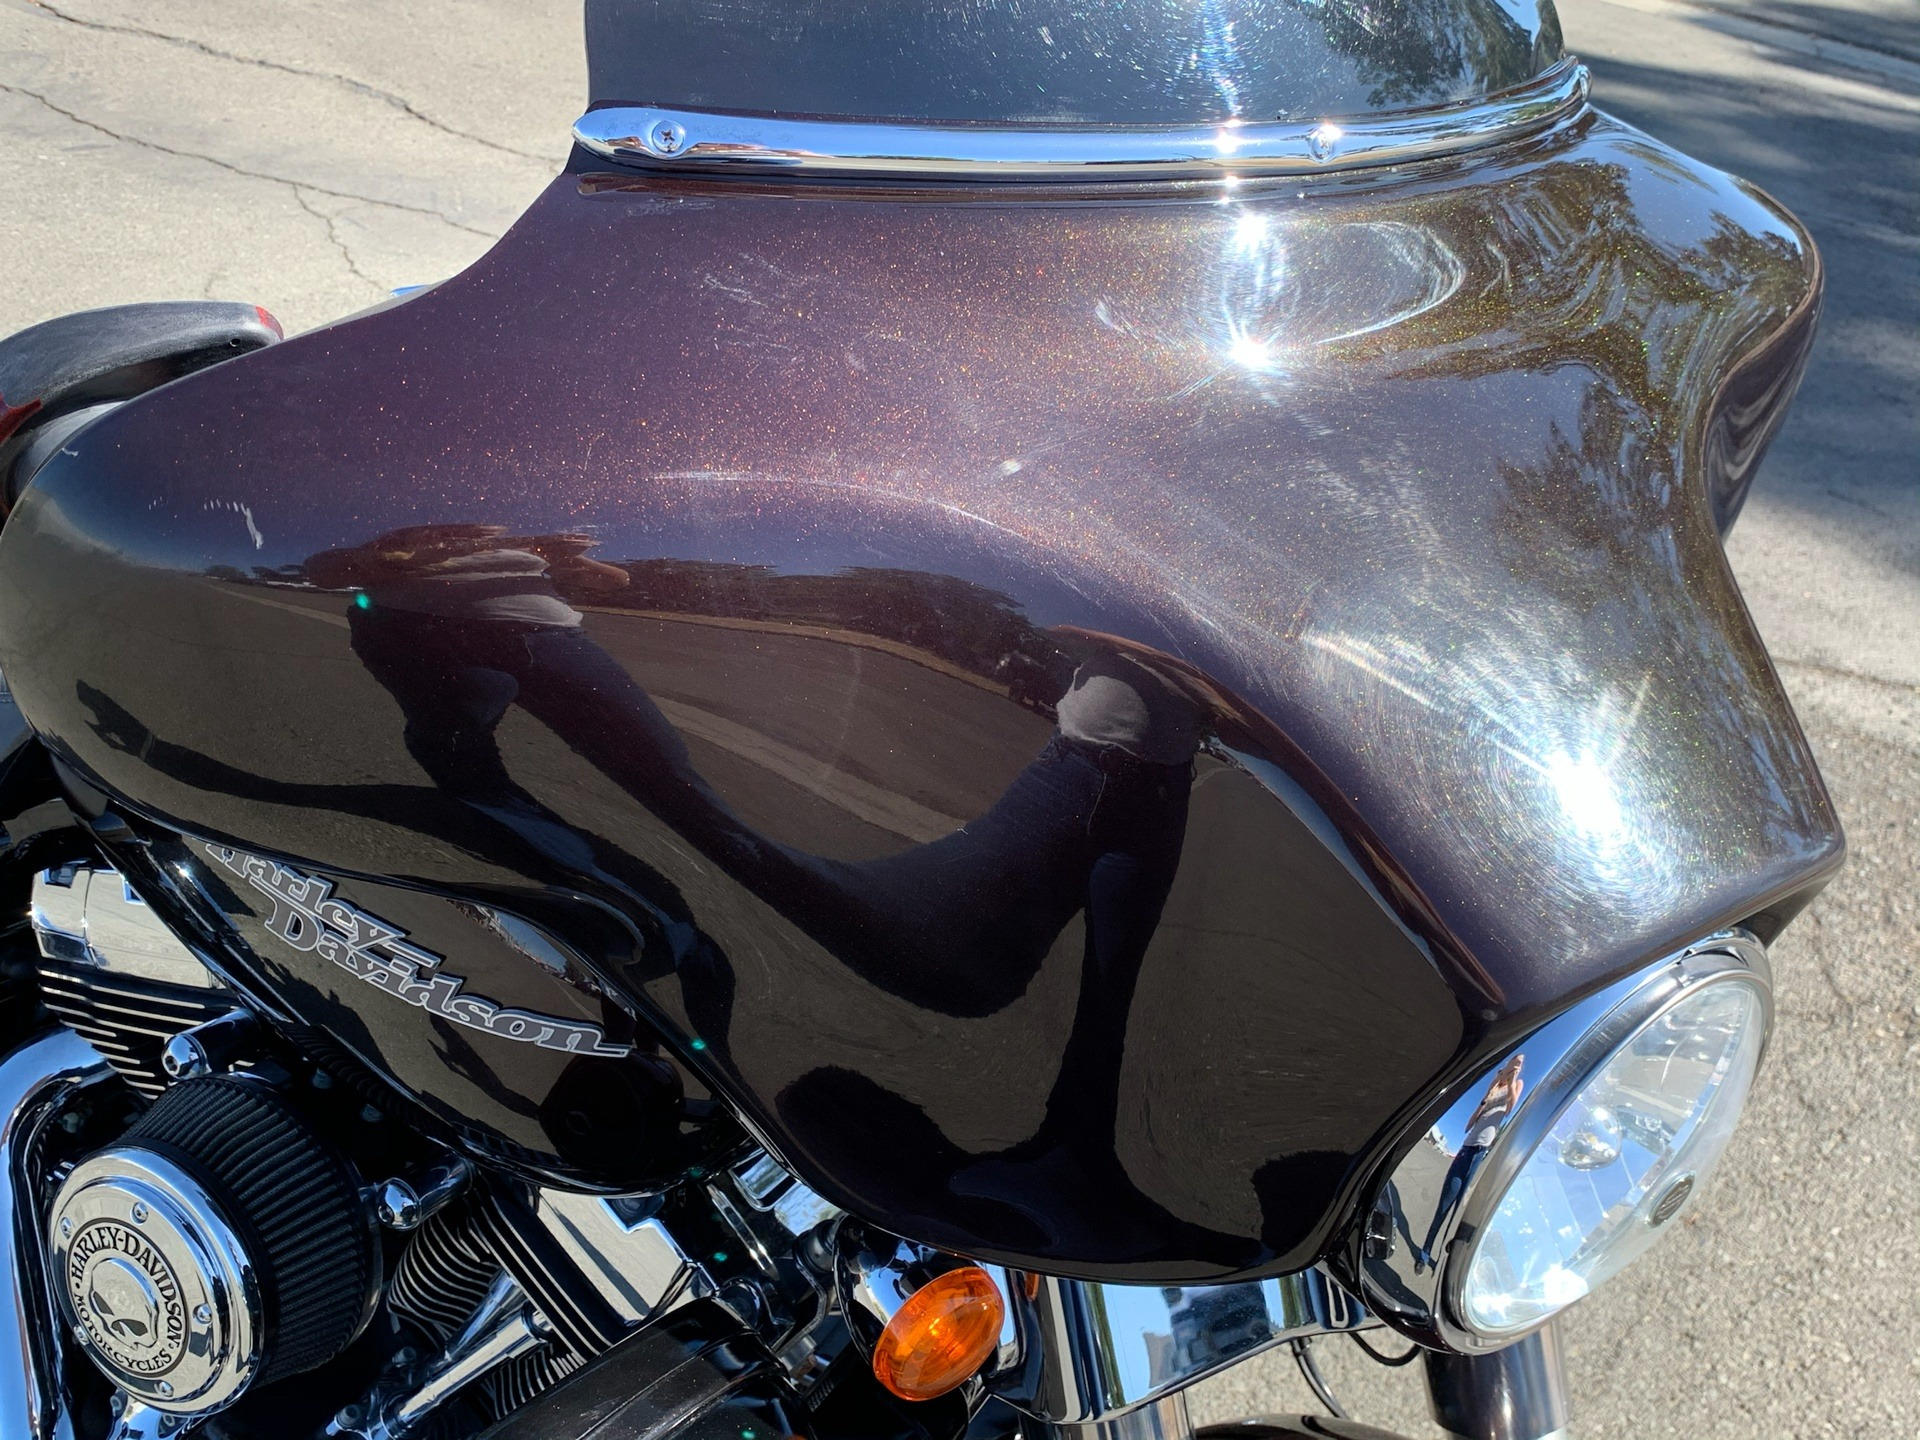 2011 Harley-Davidson Street Glide® in Vacaville, California - Photo 2